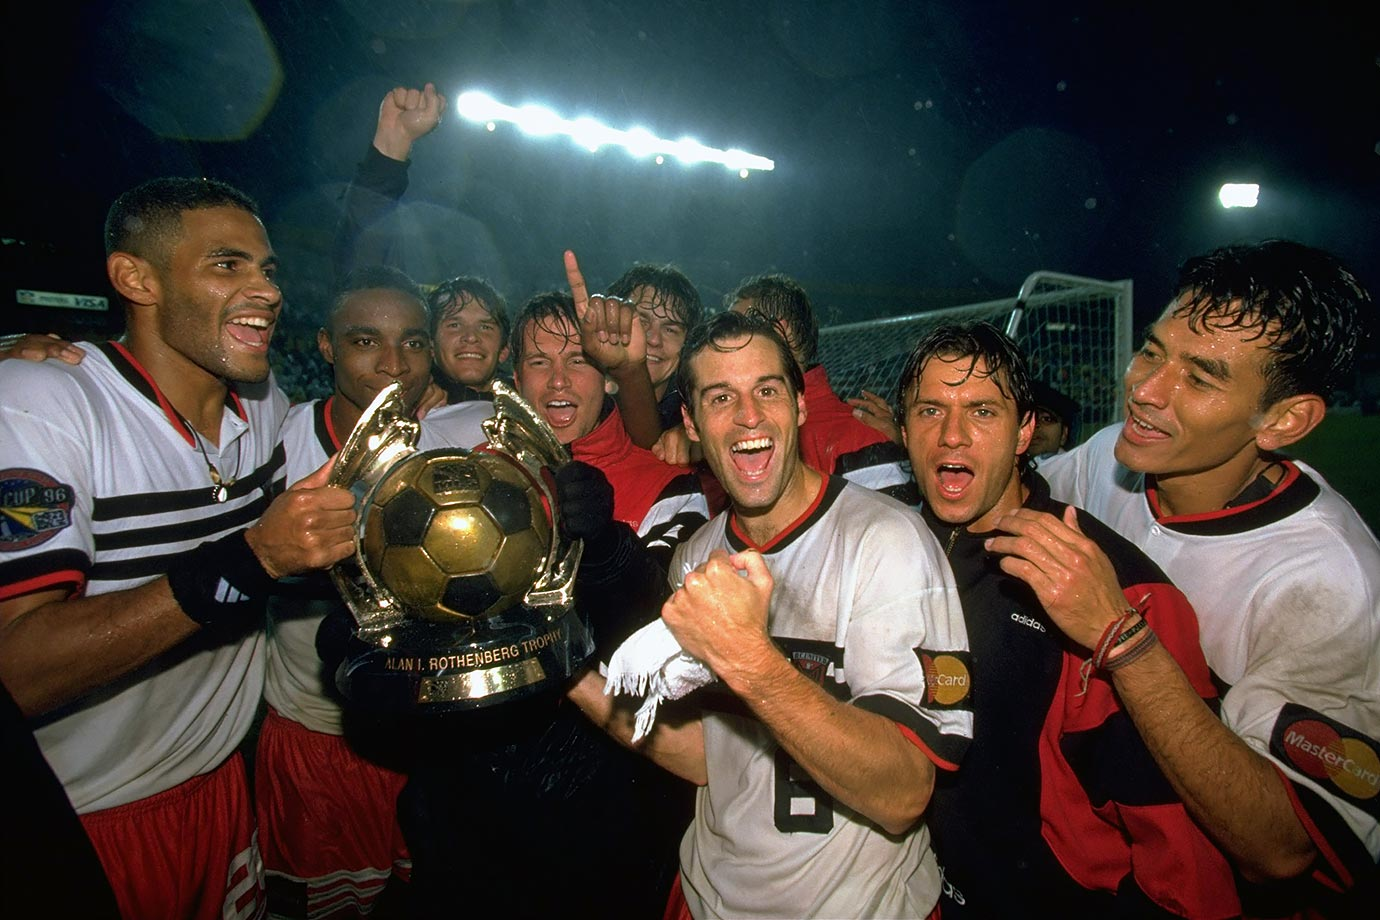 1996 — D.C. United (beat LA Galaxy 3-2 in extra time)